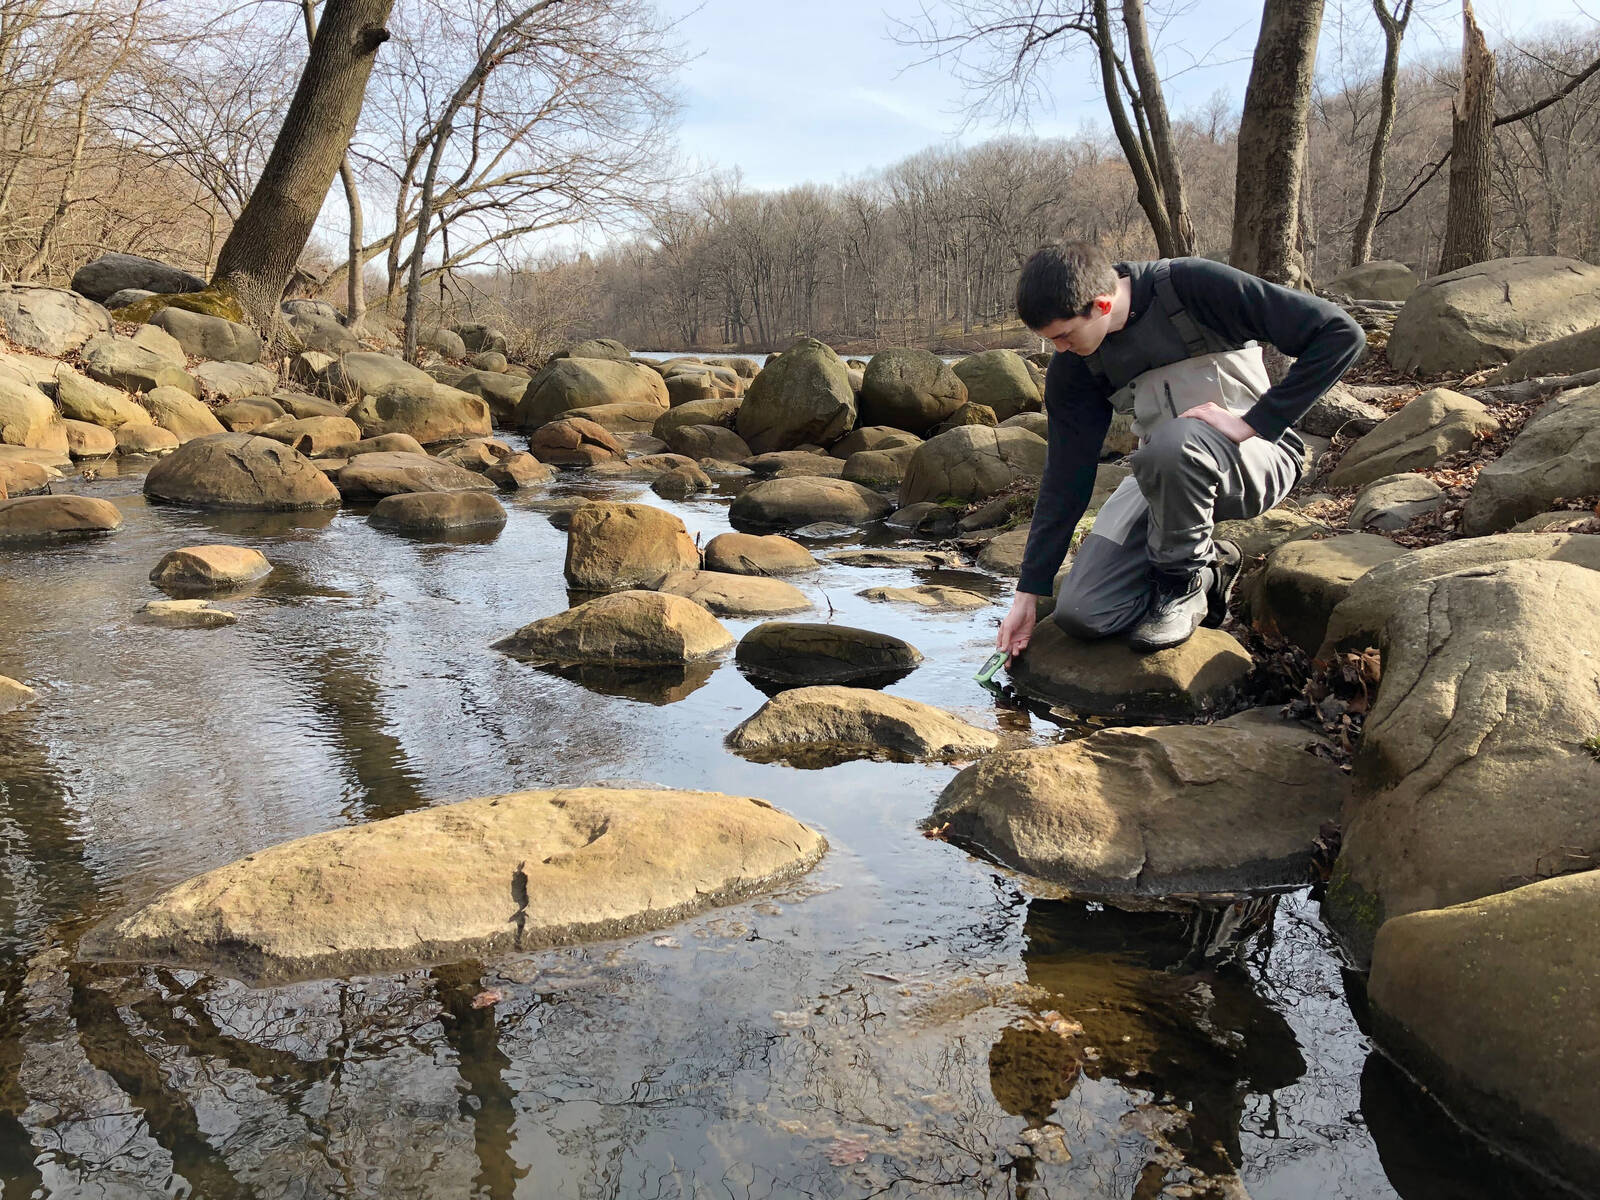 Liam McGrath, a Manhattan College student and citizen scientist with Van Cortlandt Park Alliance, dips a water quality probe into Tibbetts Brook. Credit: Maddie Kornfeld